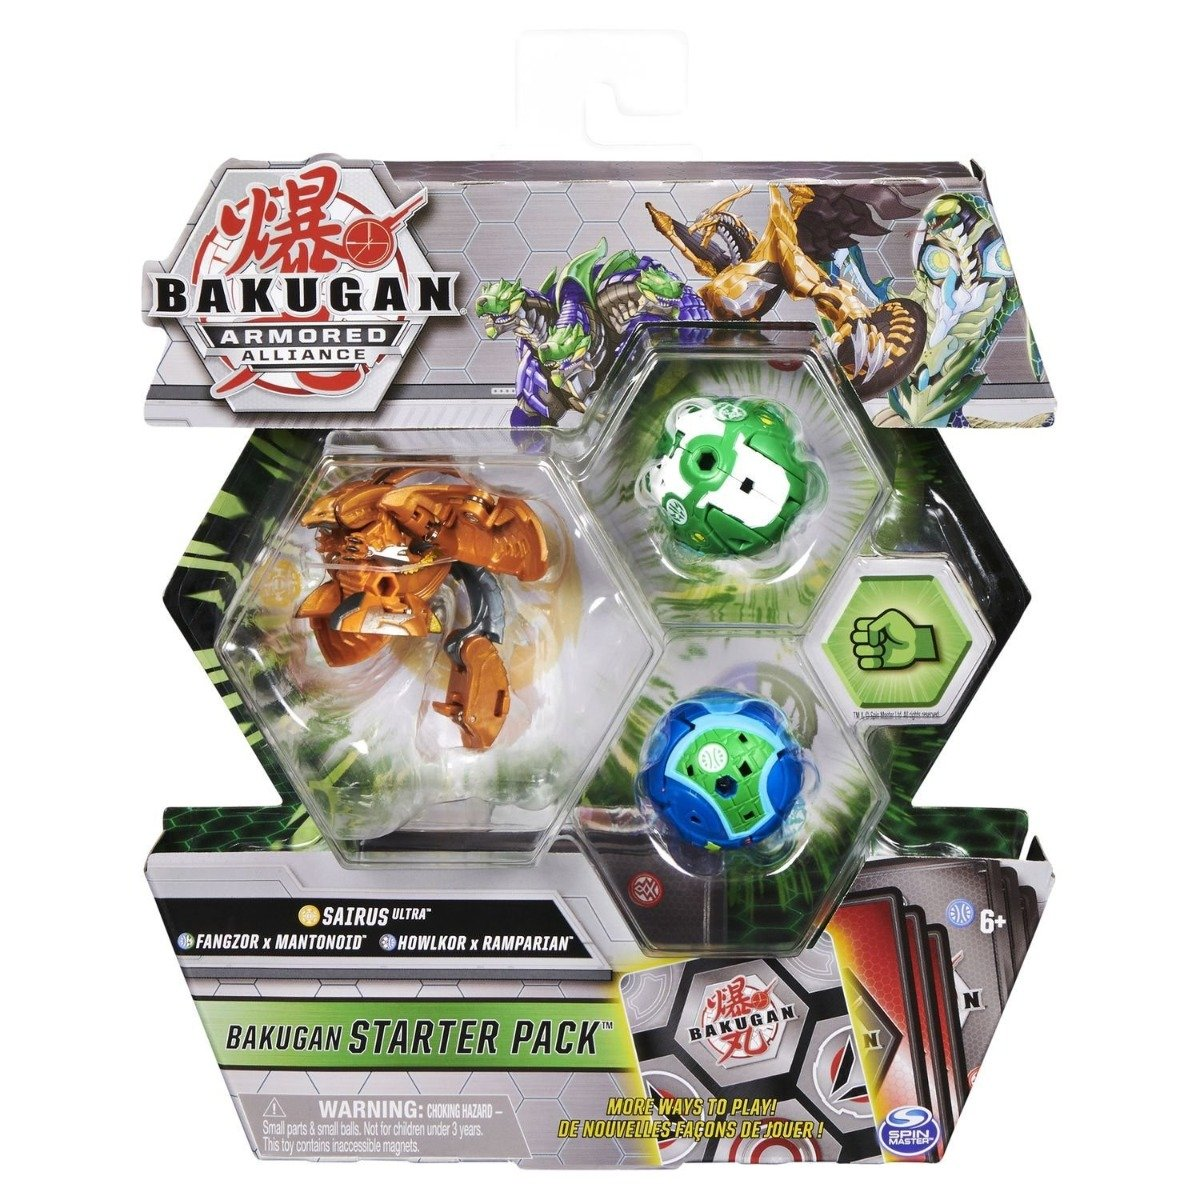 Set Bakugan Armored Alliance, Sairus Ultra, Fangzor x Mantonoid, Howlkor x Ramparian 20125410